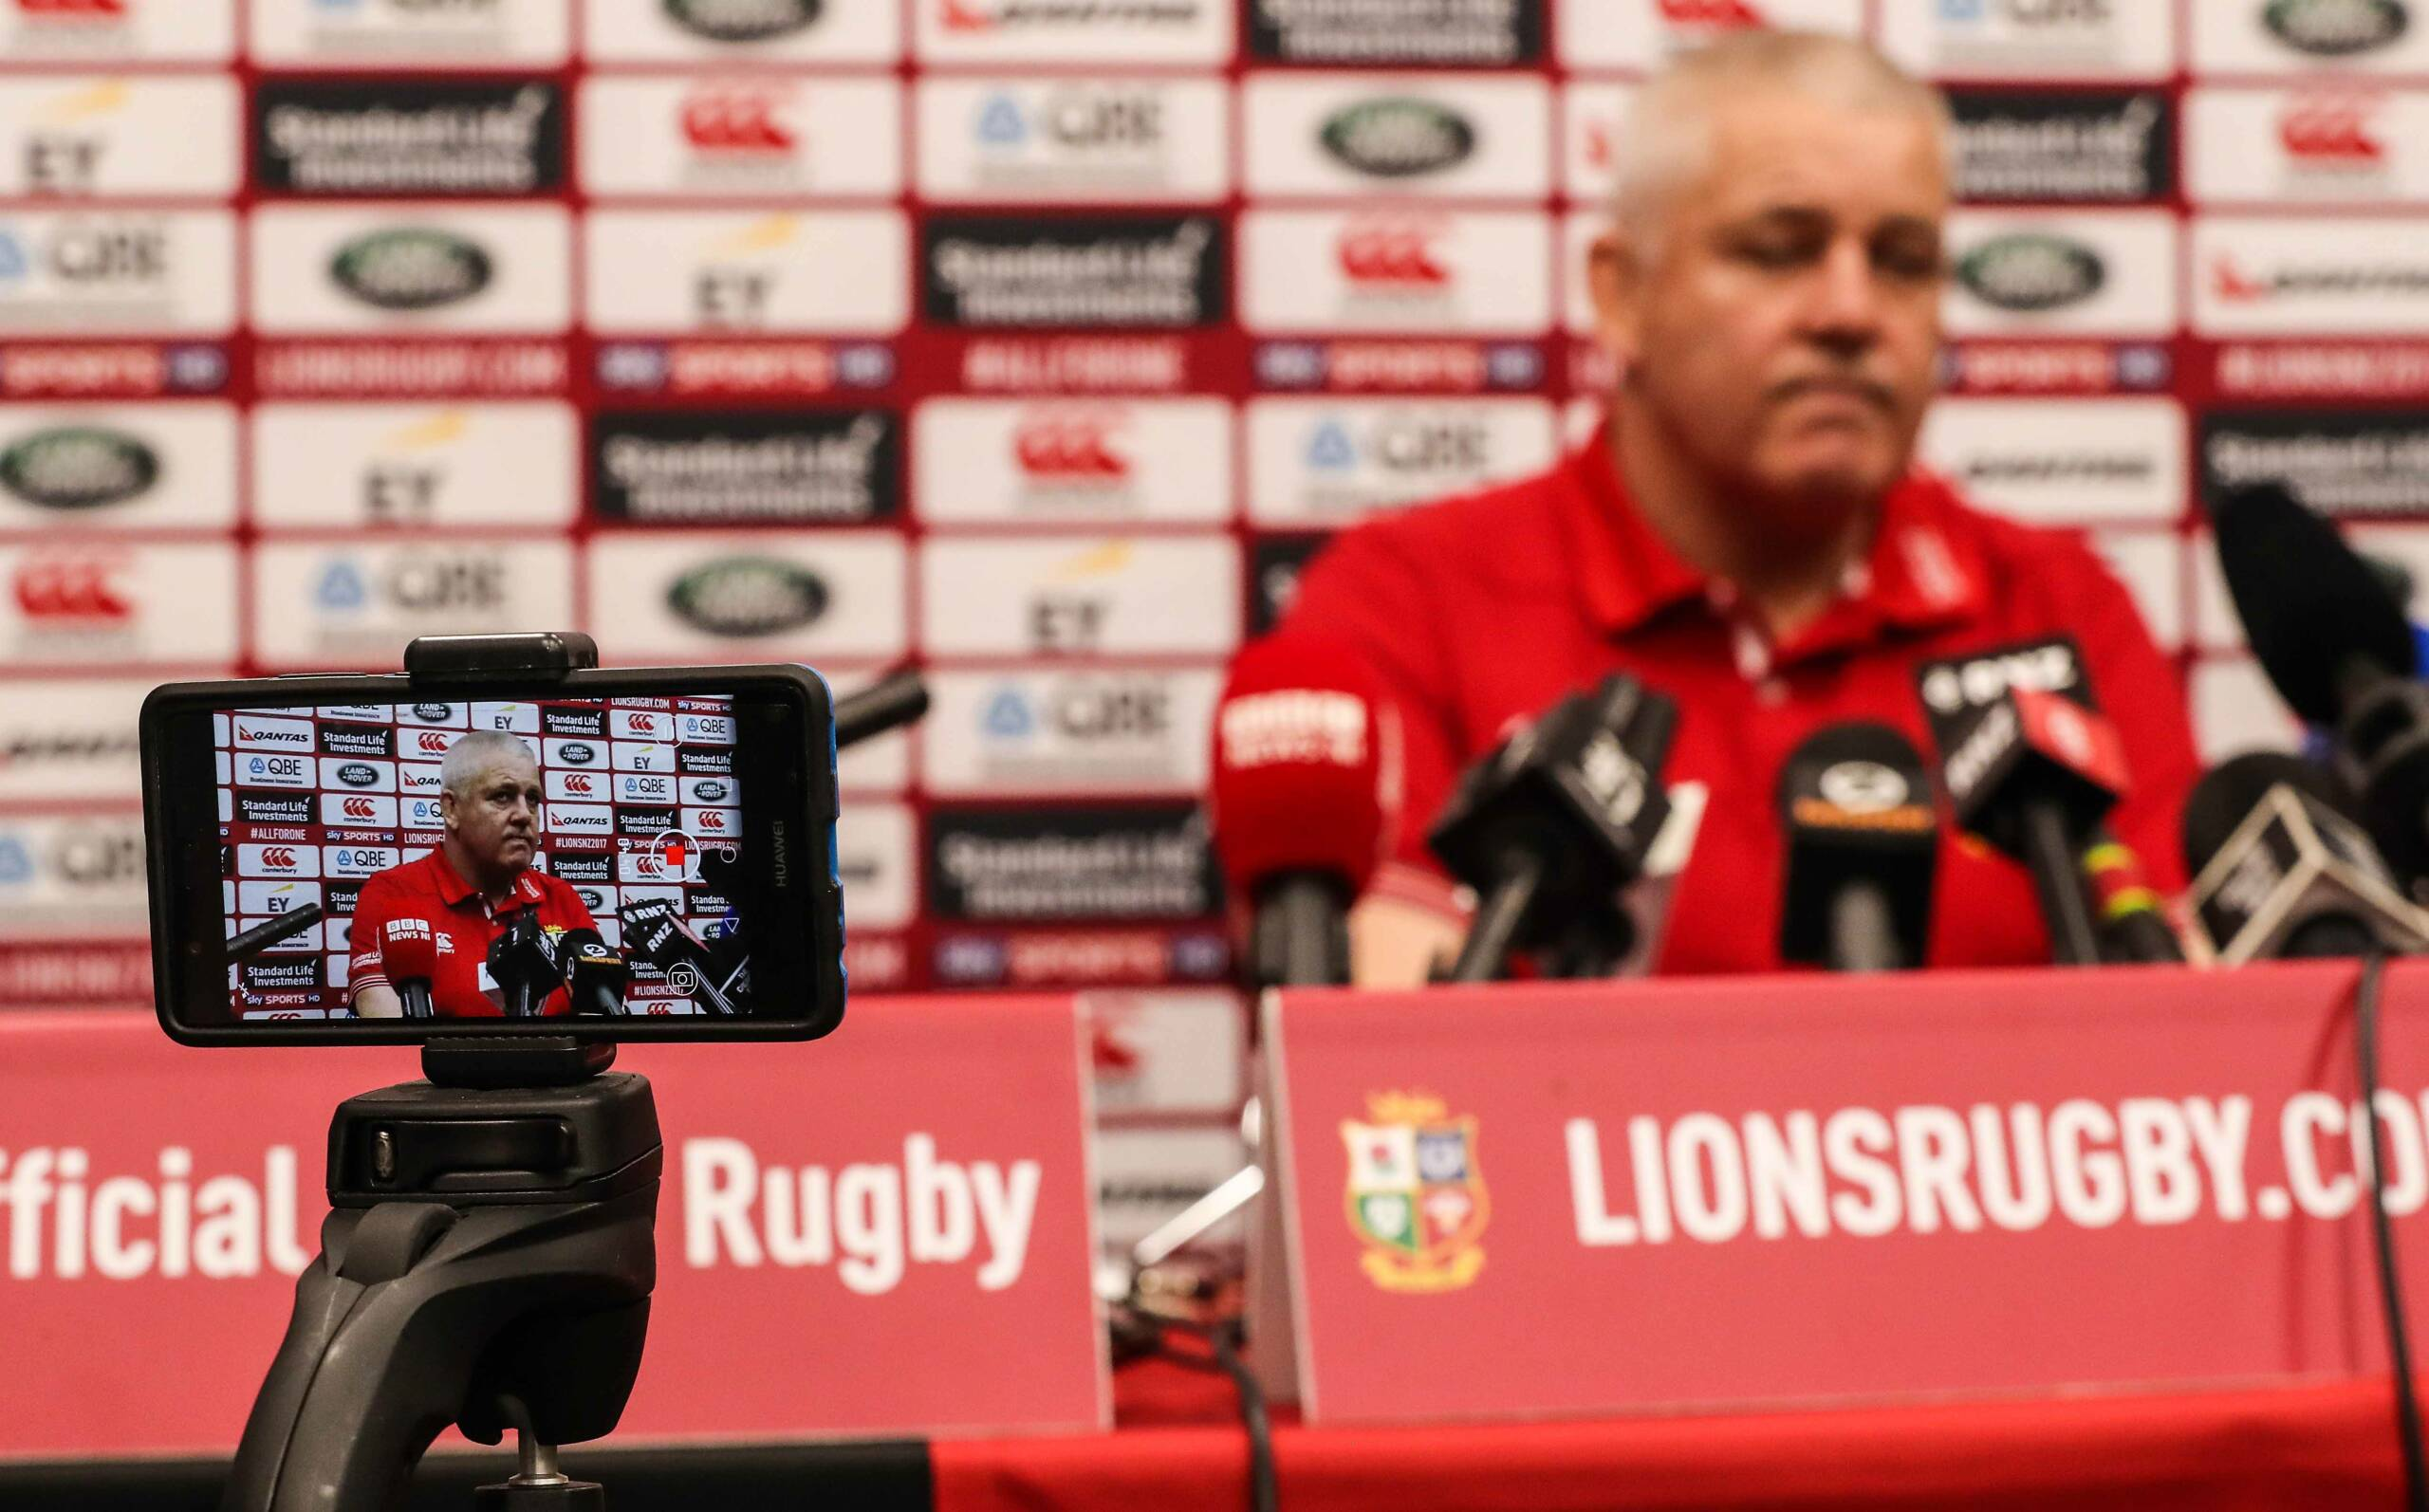 Lions press conference